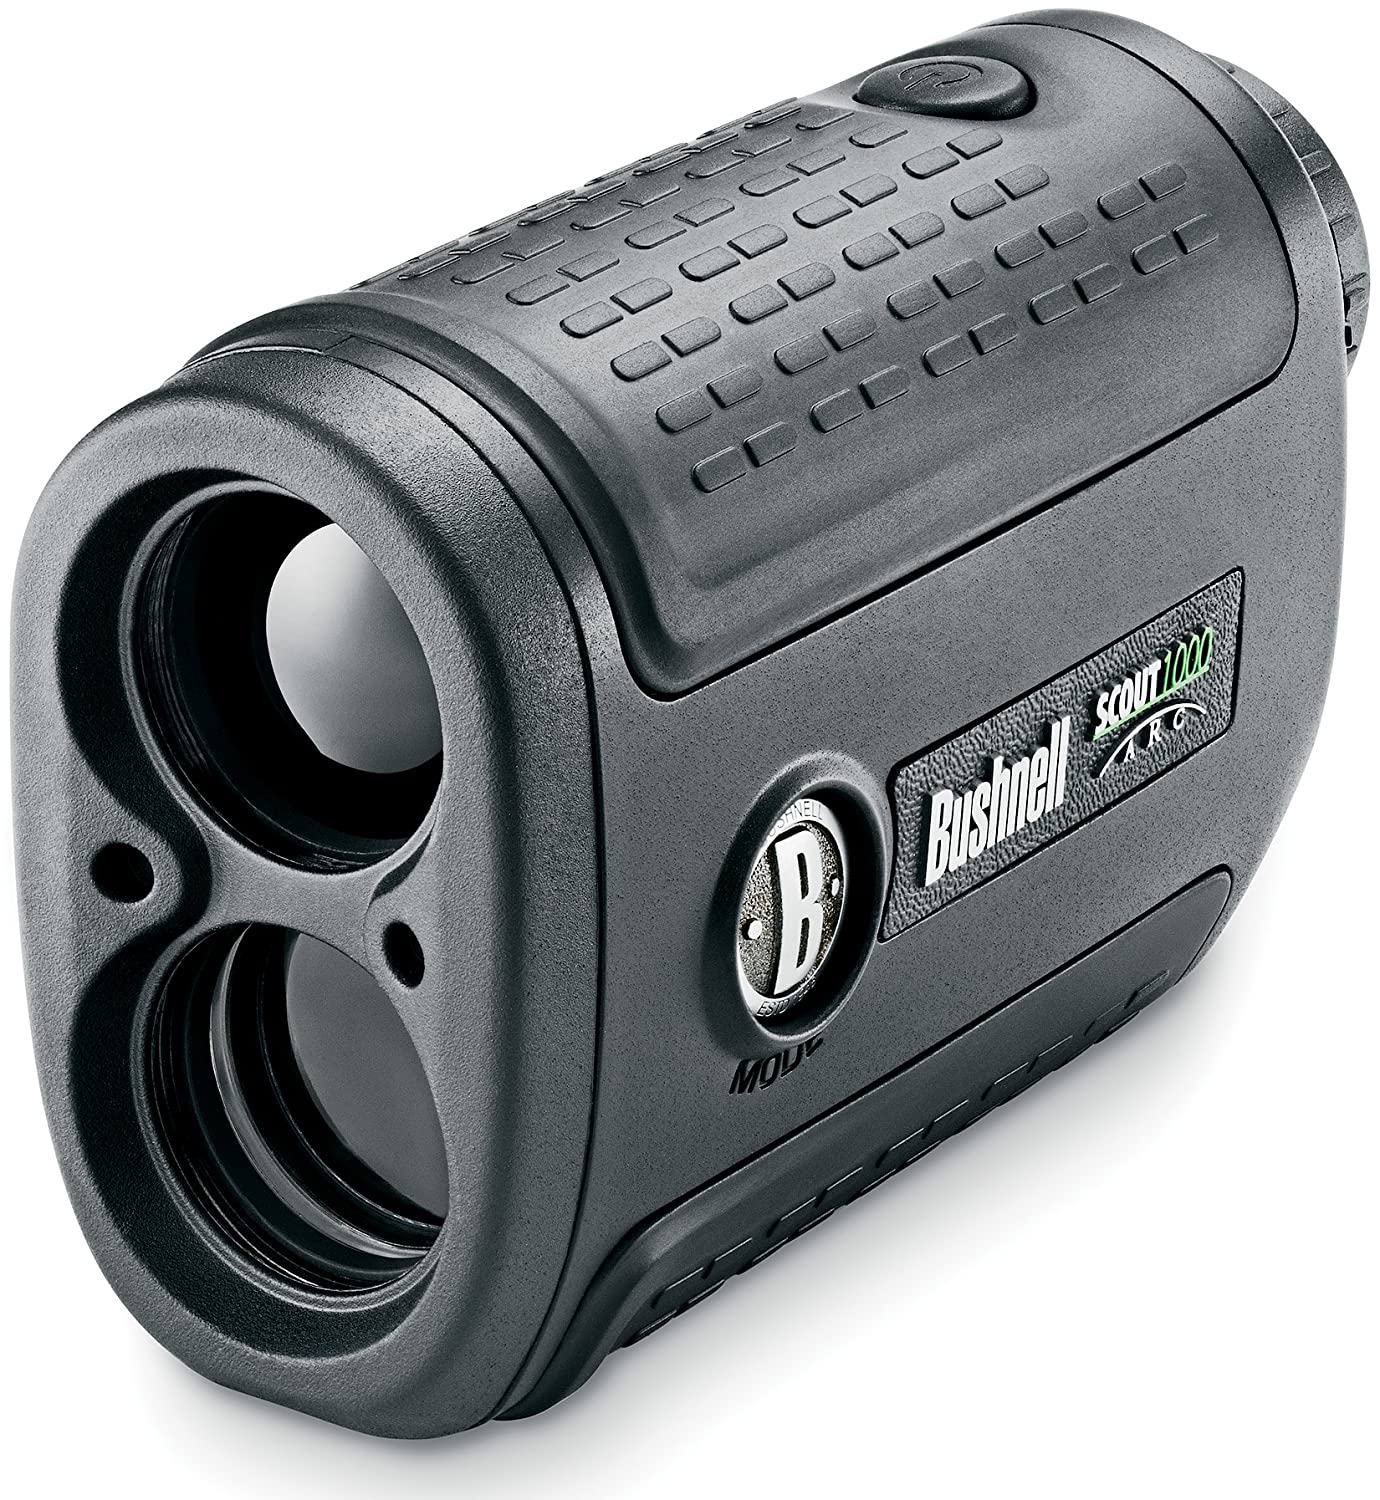 A-closer-look-at-Bushnell-Scout-1000-ARC-Laser-Range-Finder